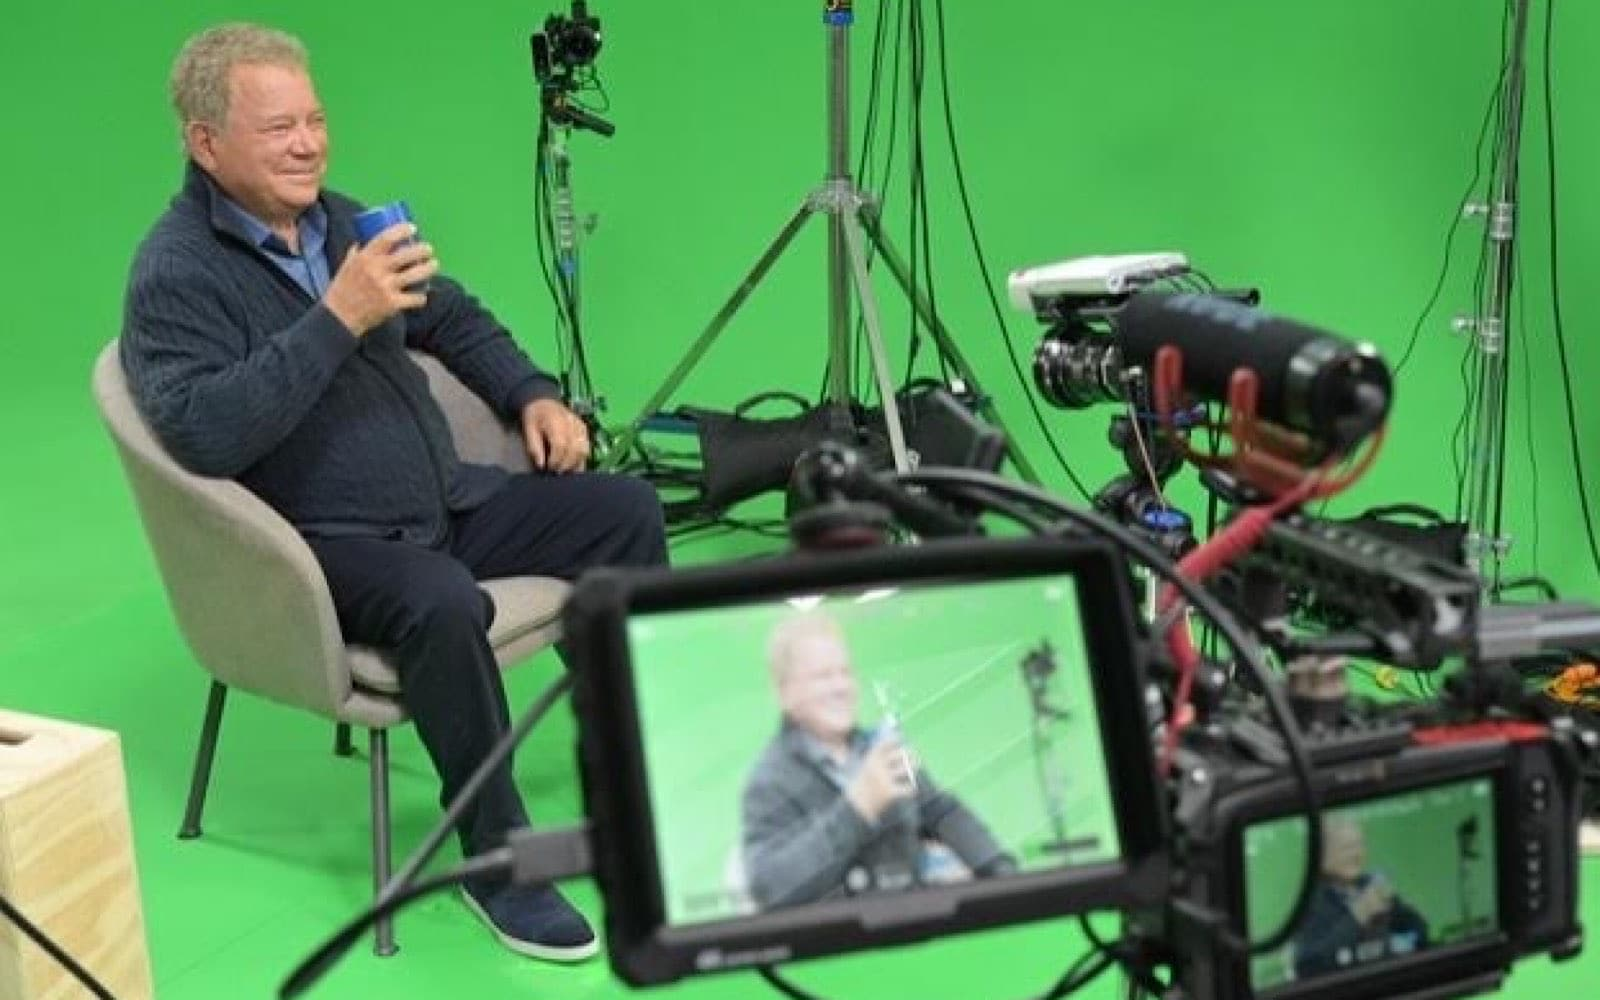 William Shatner recording his StoryFile digital presence.